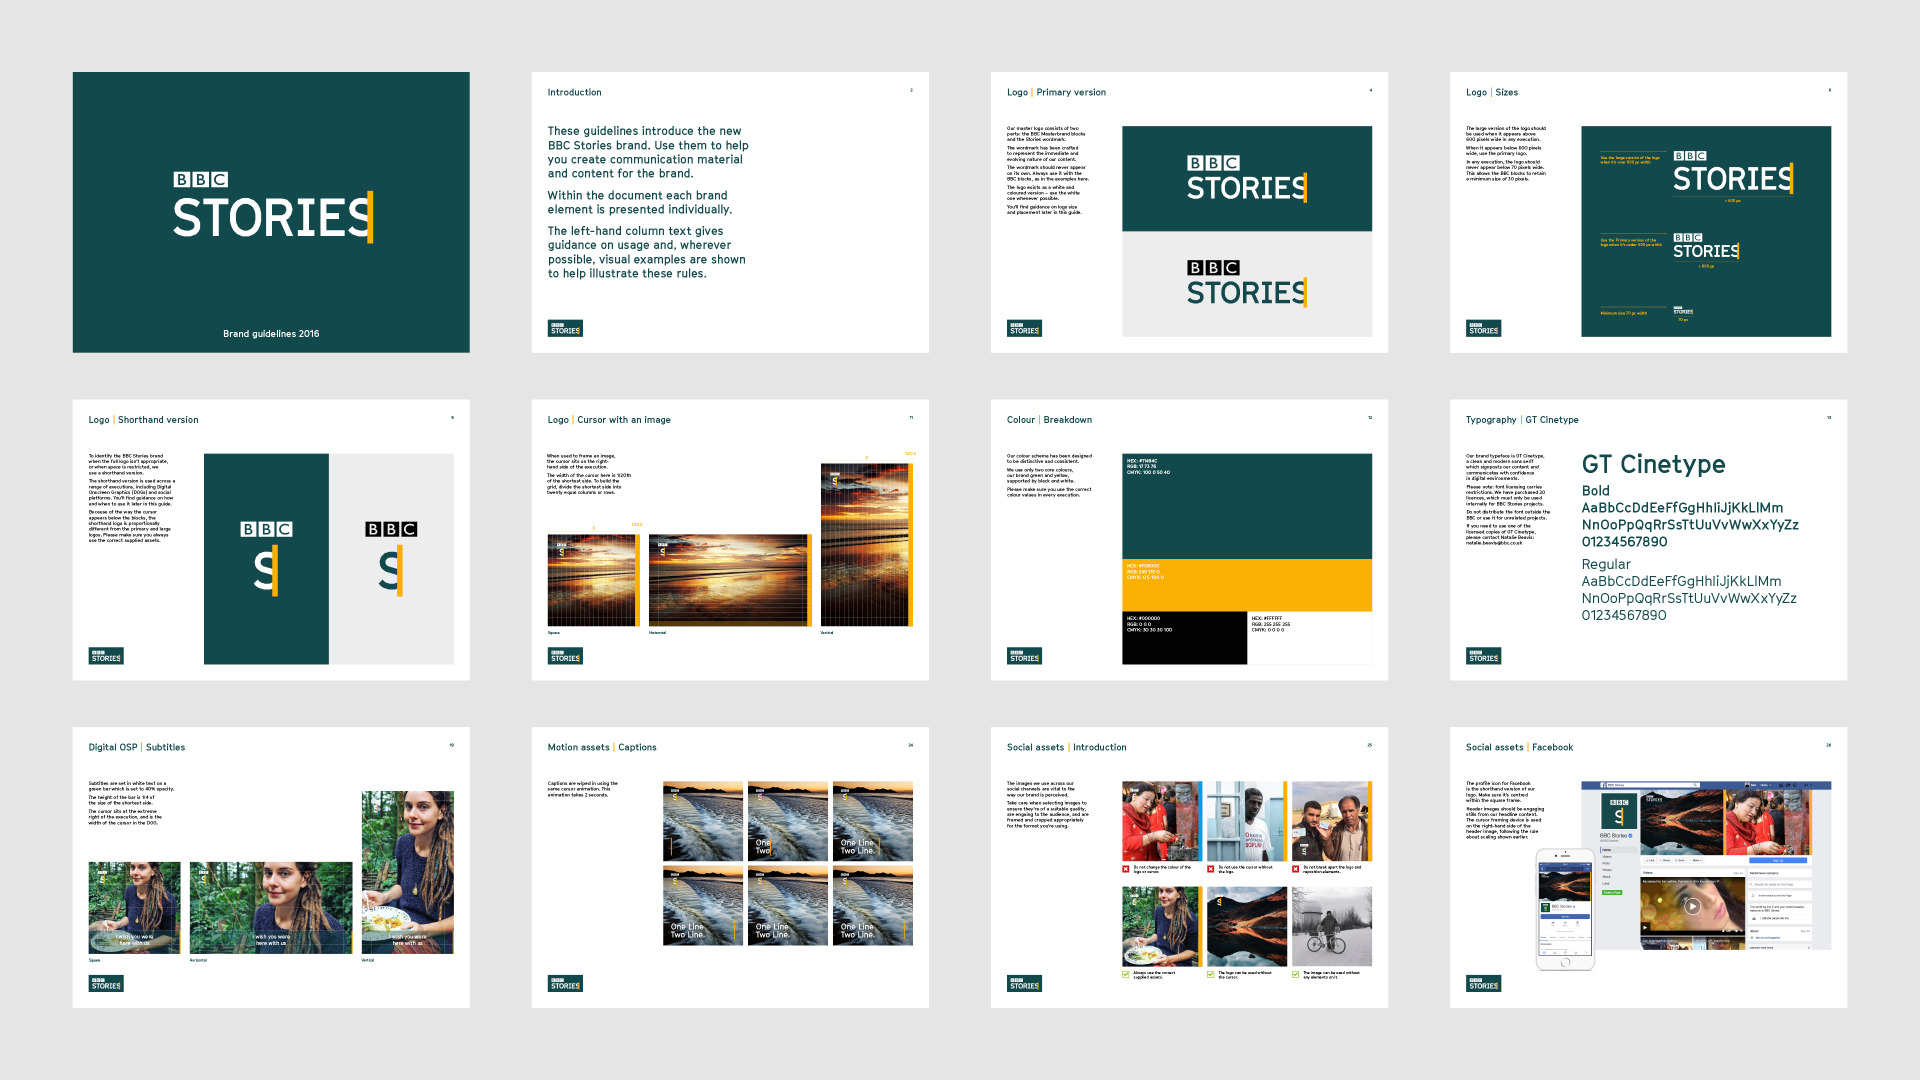 BBCStories_CaseStudy_FullPanels_018-1920x1080 January Newsletter Template Free on microsoft word, christmas family, preschool classroom,